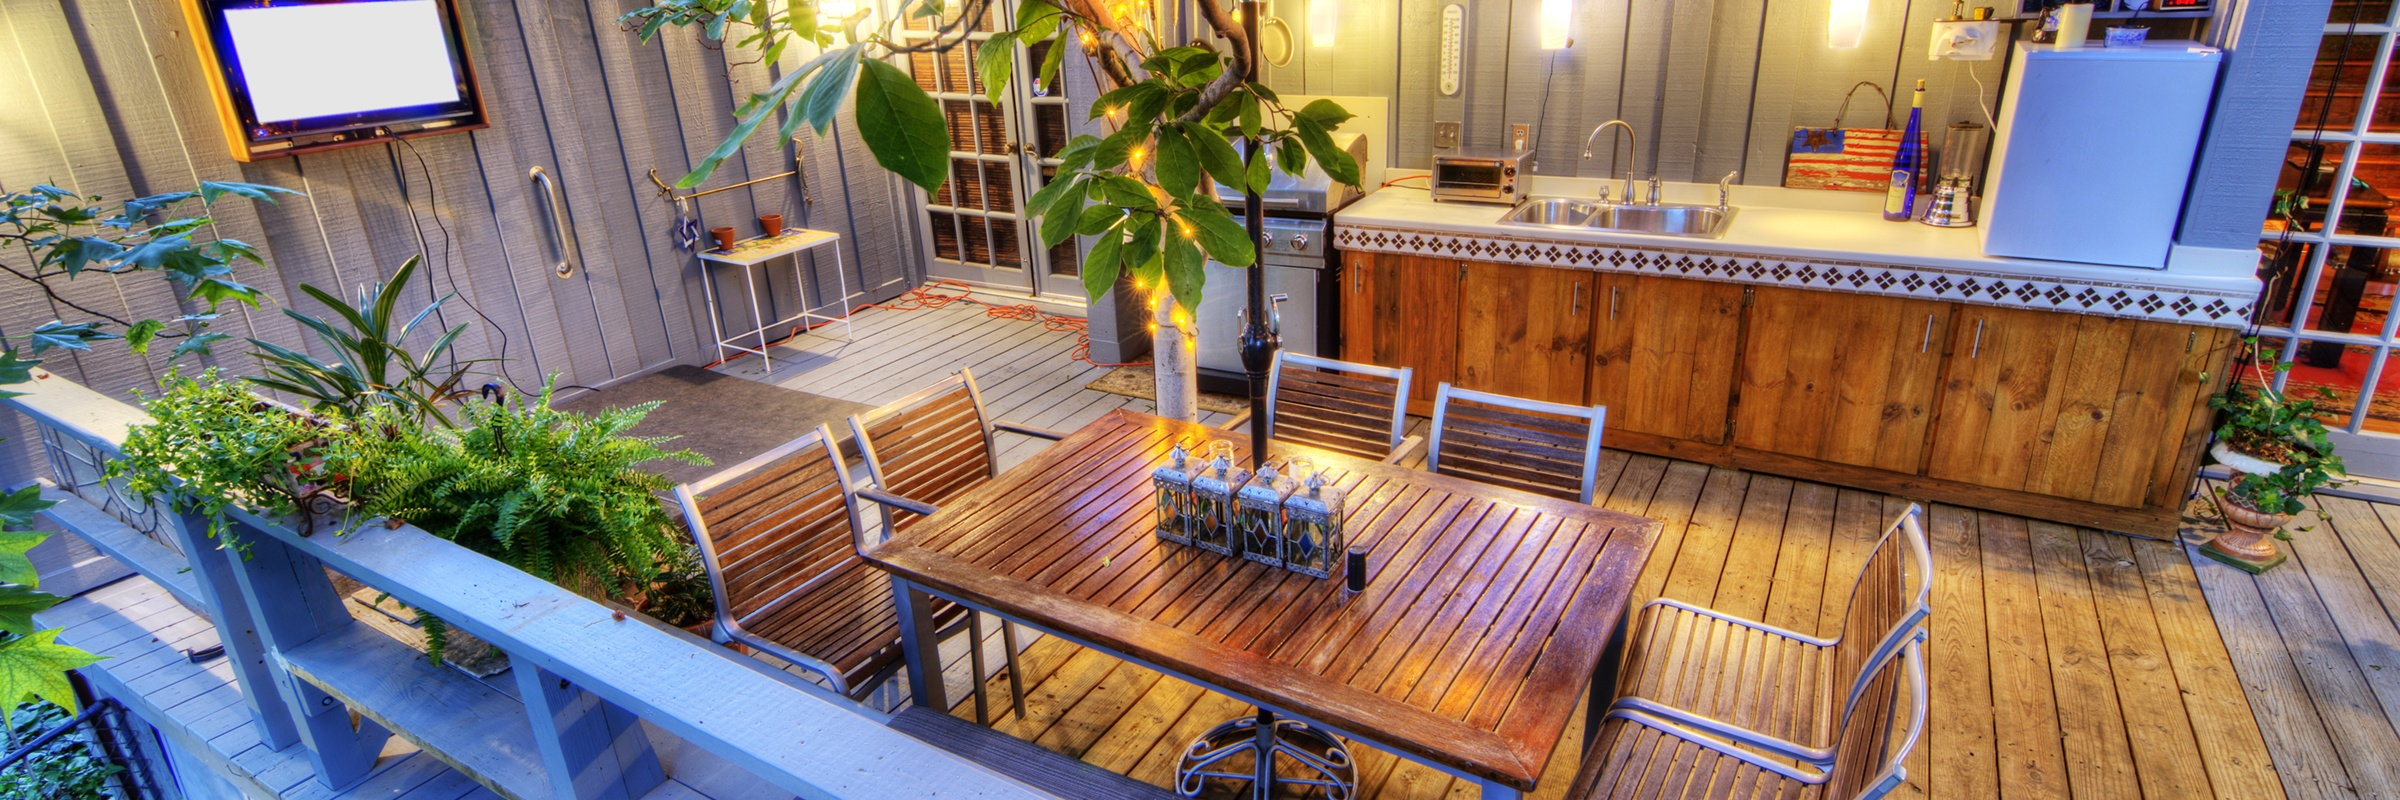 Luxury deck with seating, grills, and plants